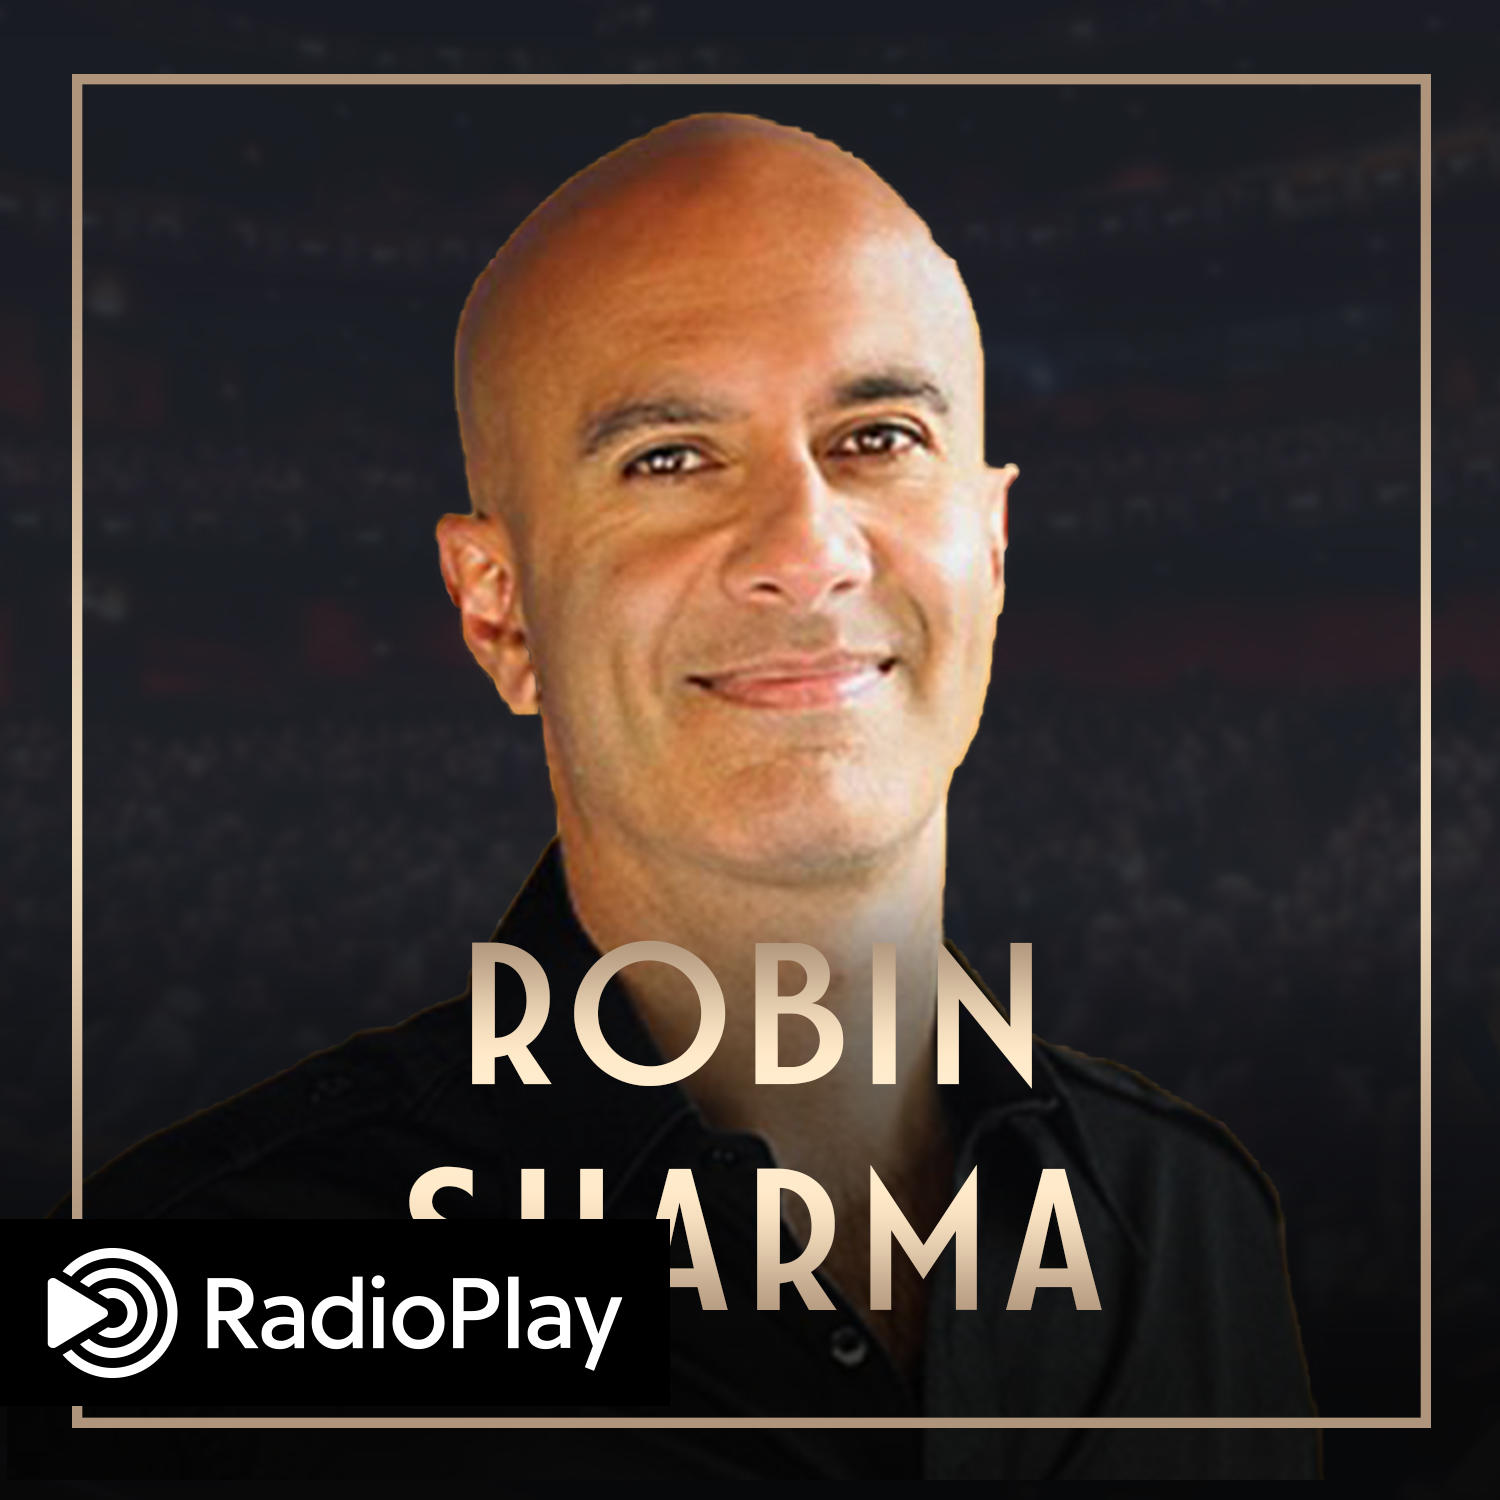 382. Robin Sharma - The Monk Who Sold His Ferrari